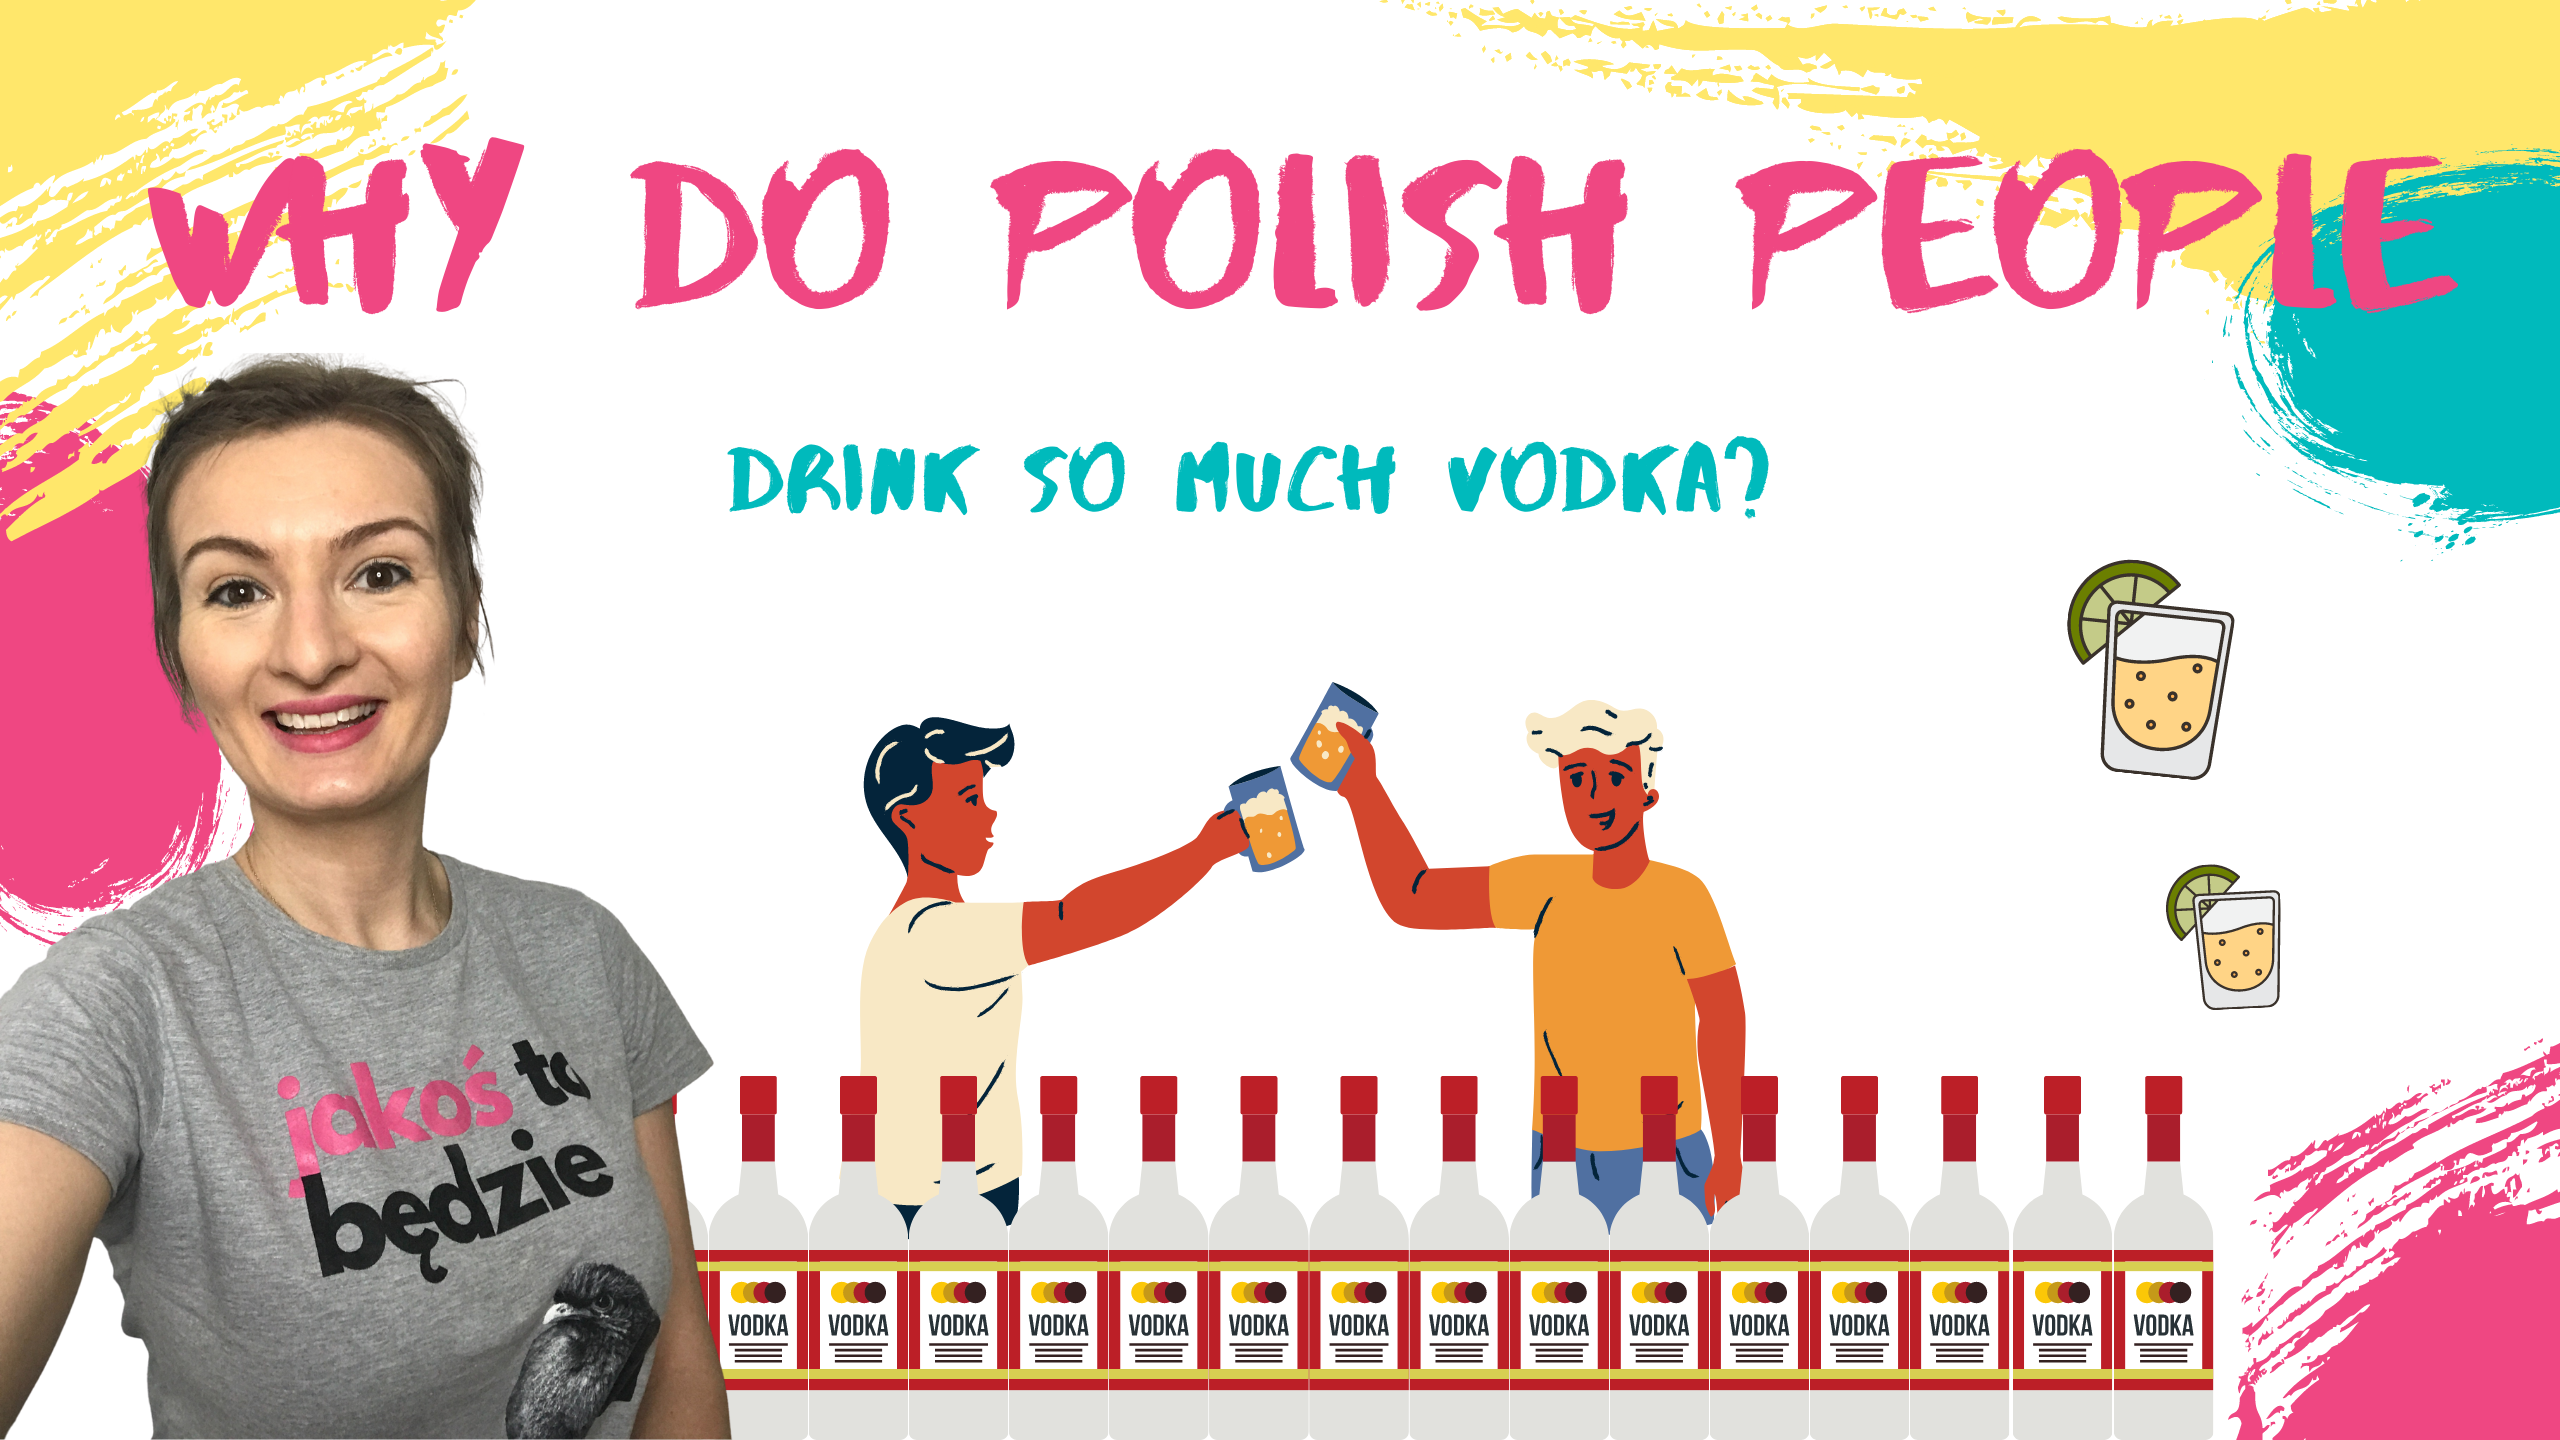 Why do Polish people drink so much vodka